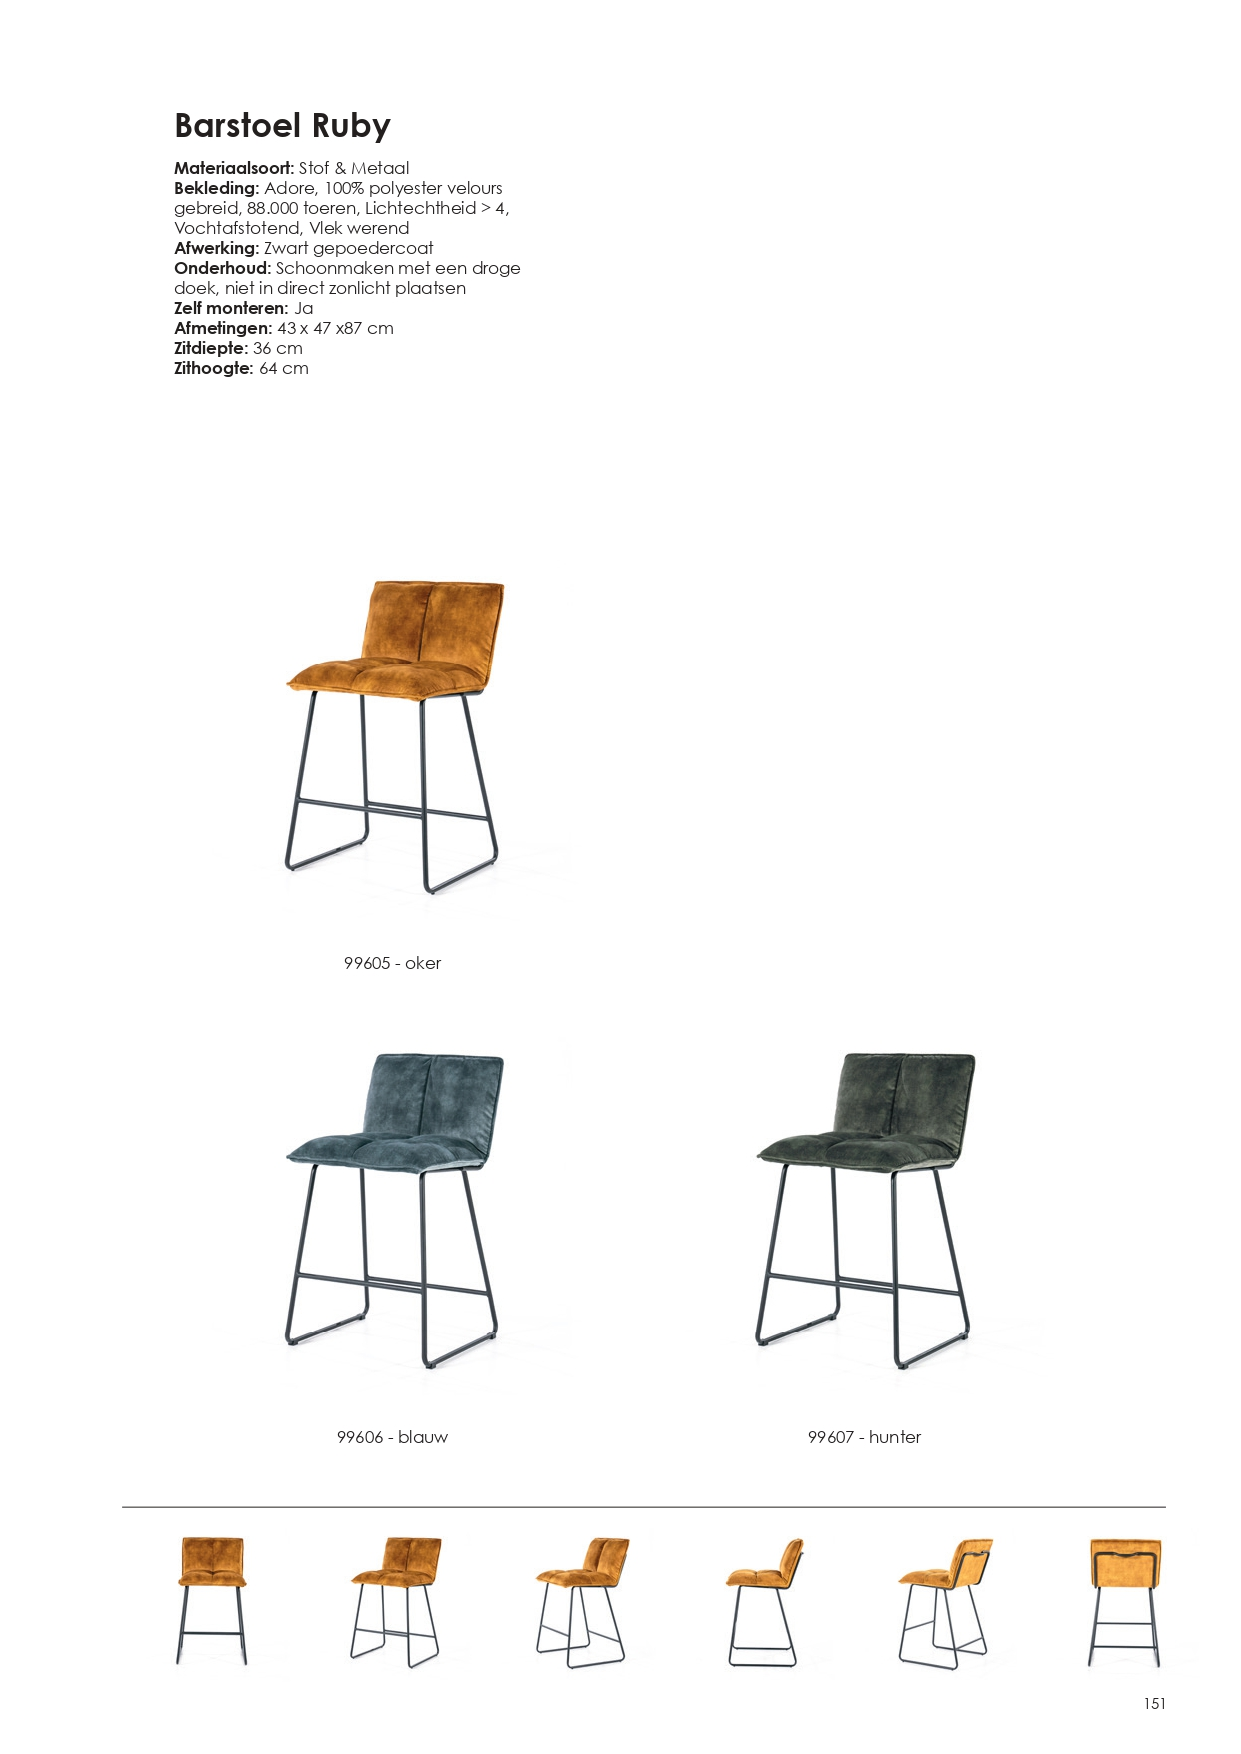 Catalogus SS21 NL_page-0151